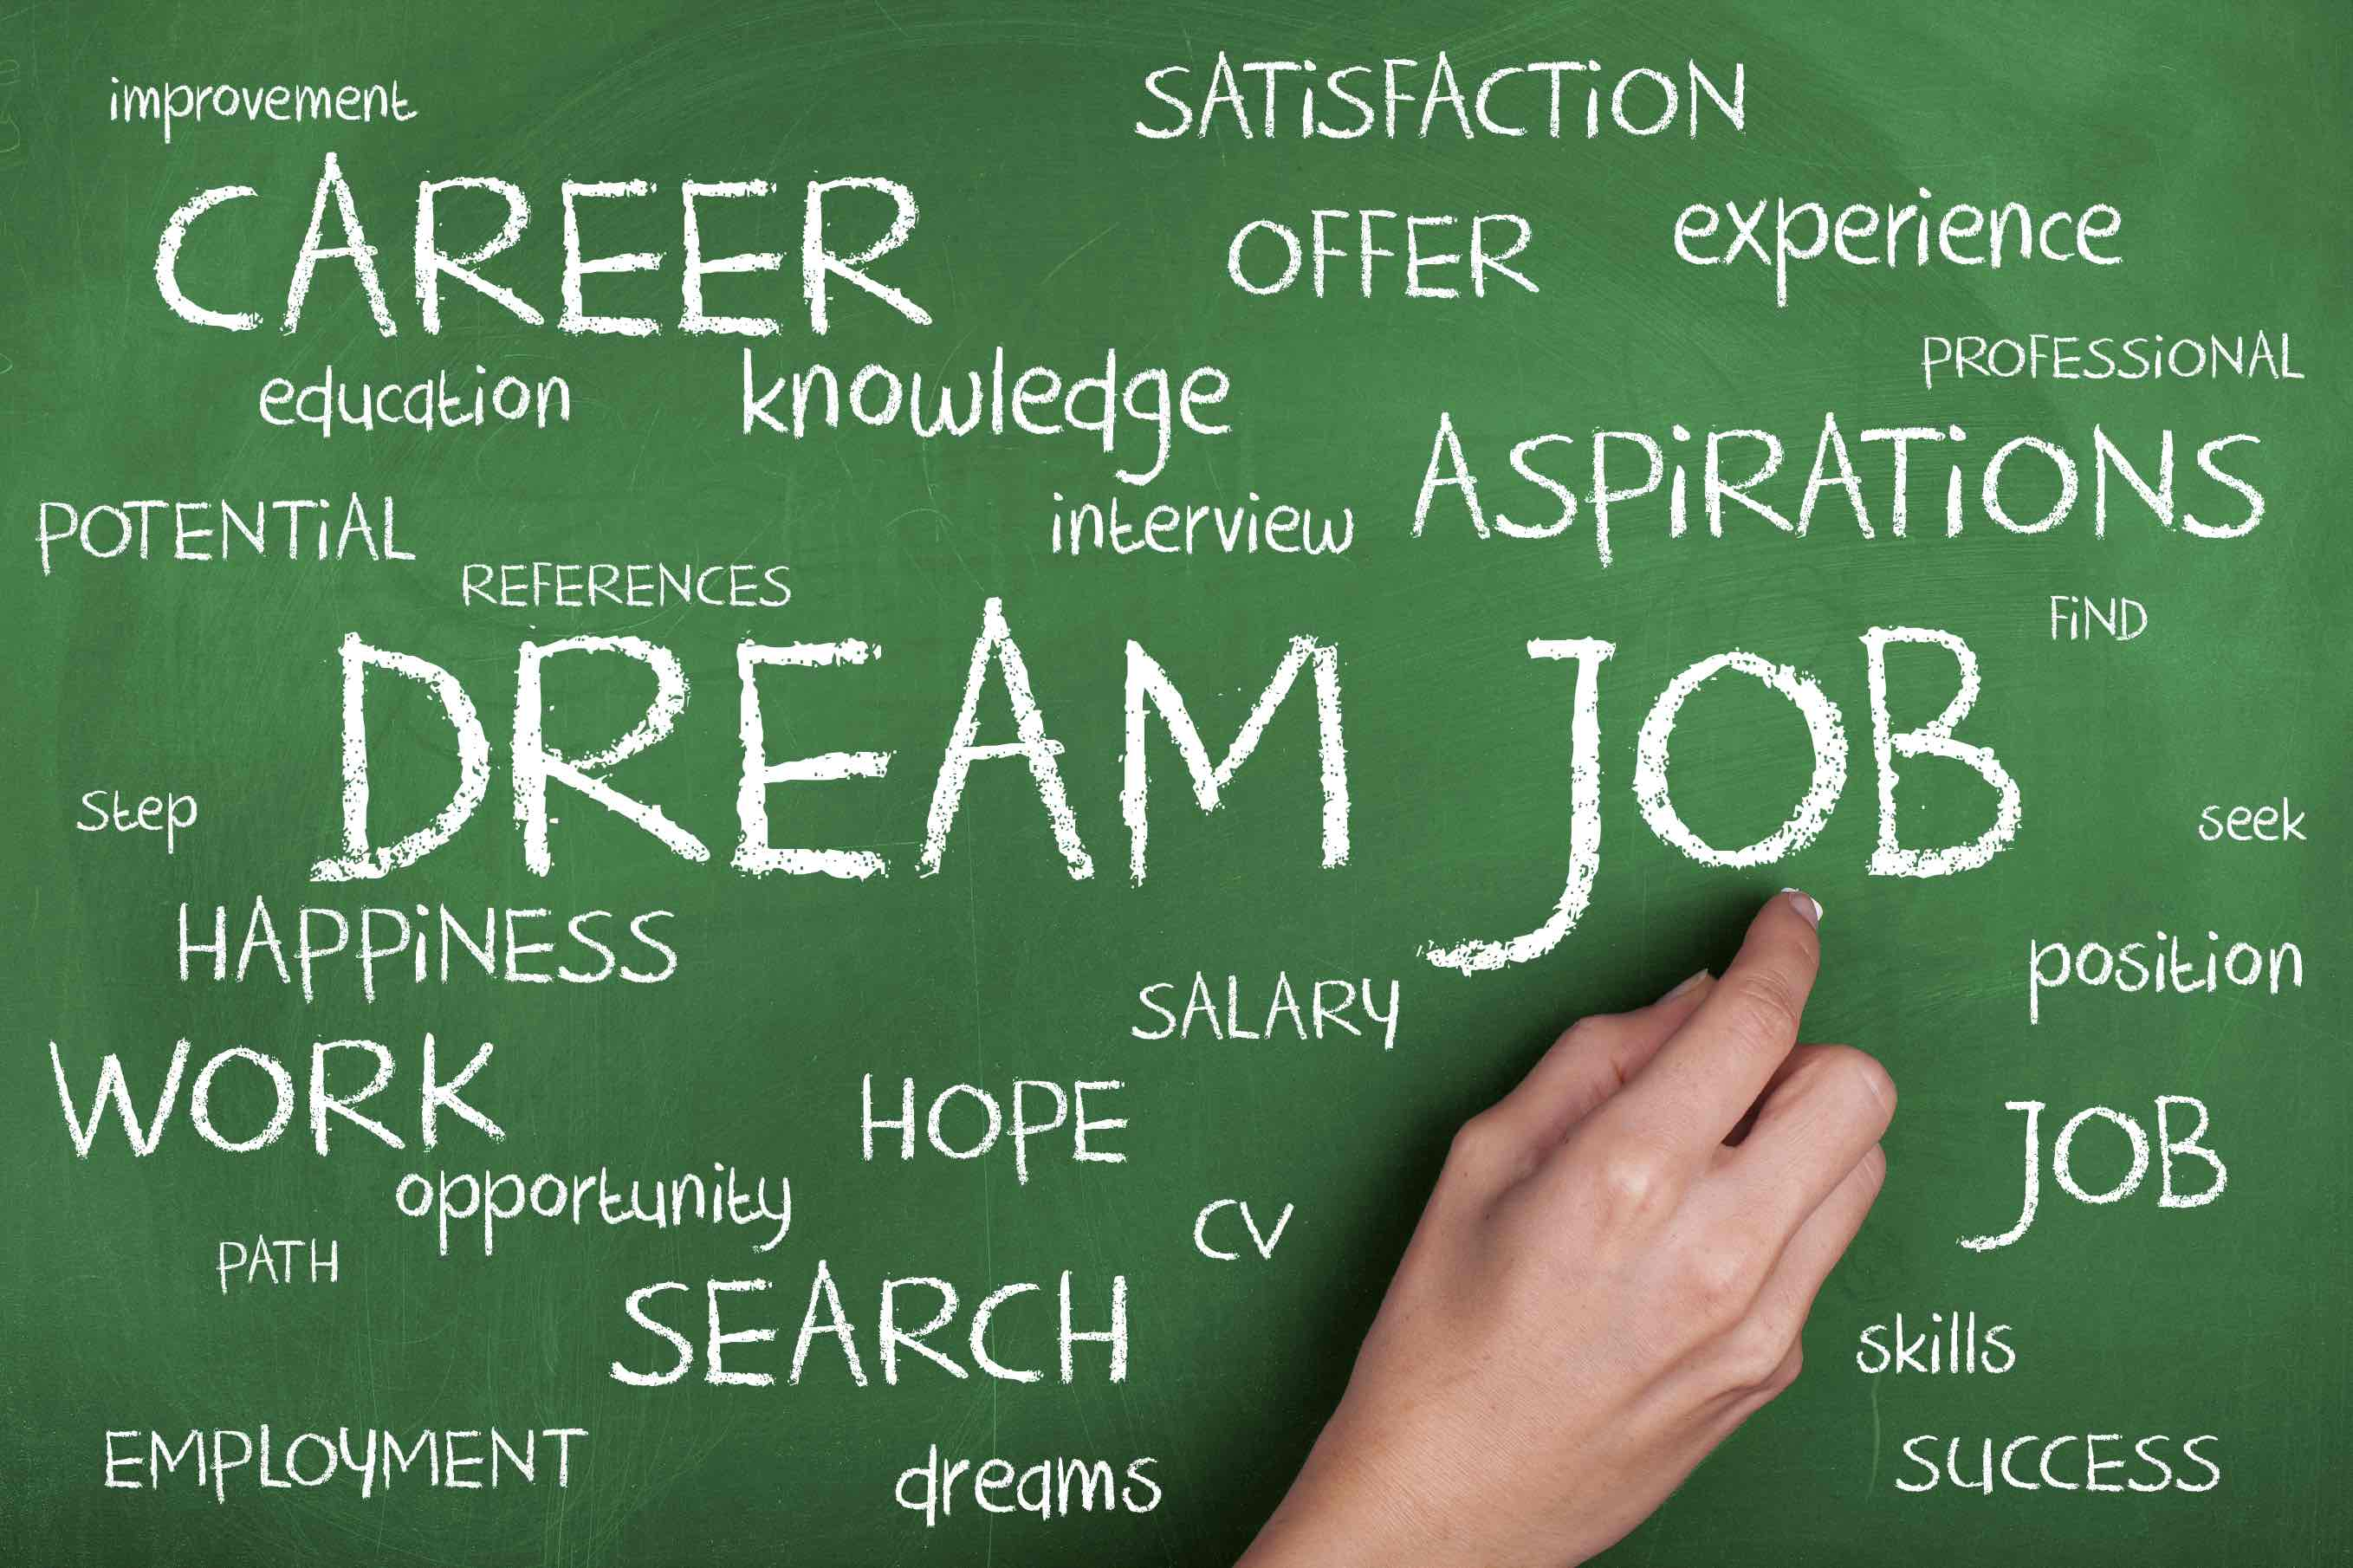 Searching for New Employees? Make an Accurate Job Description